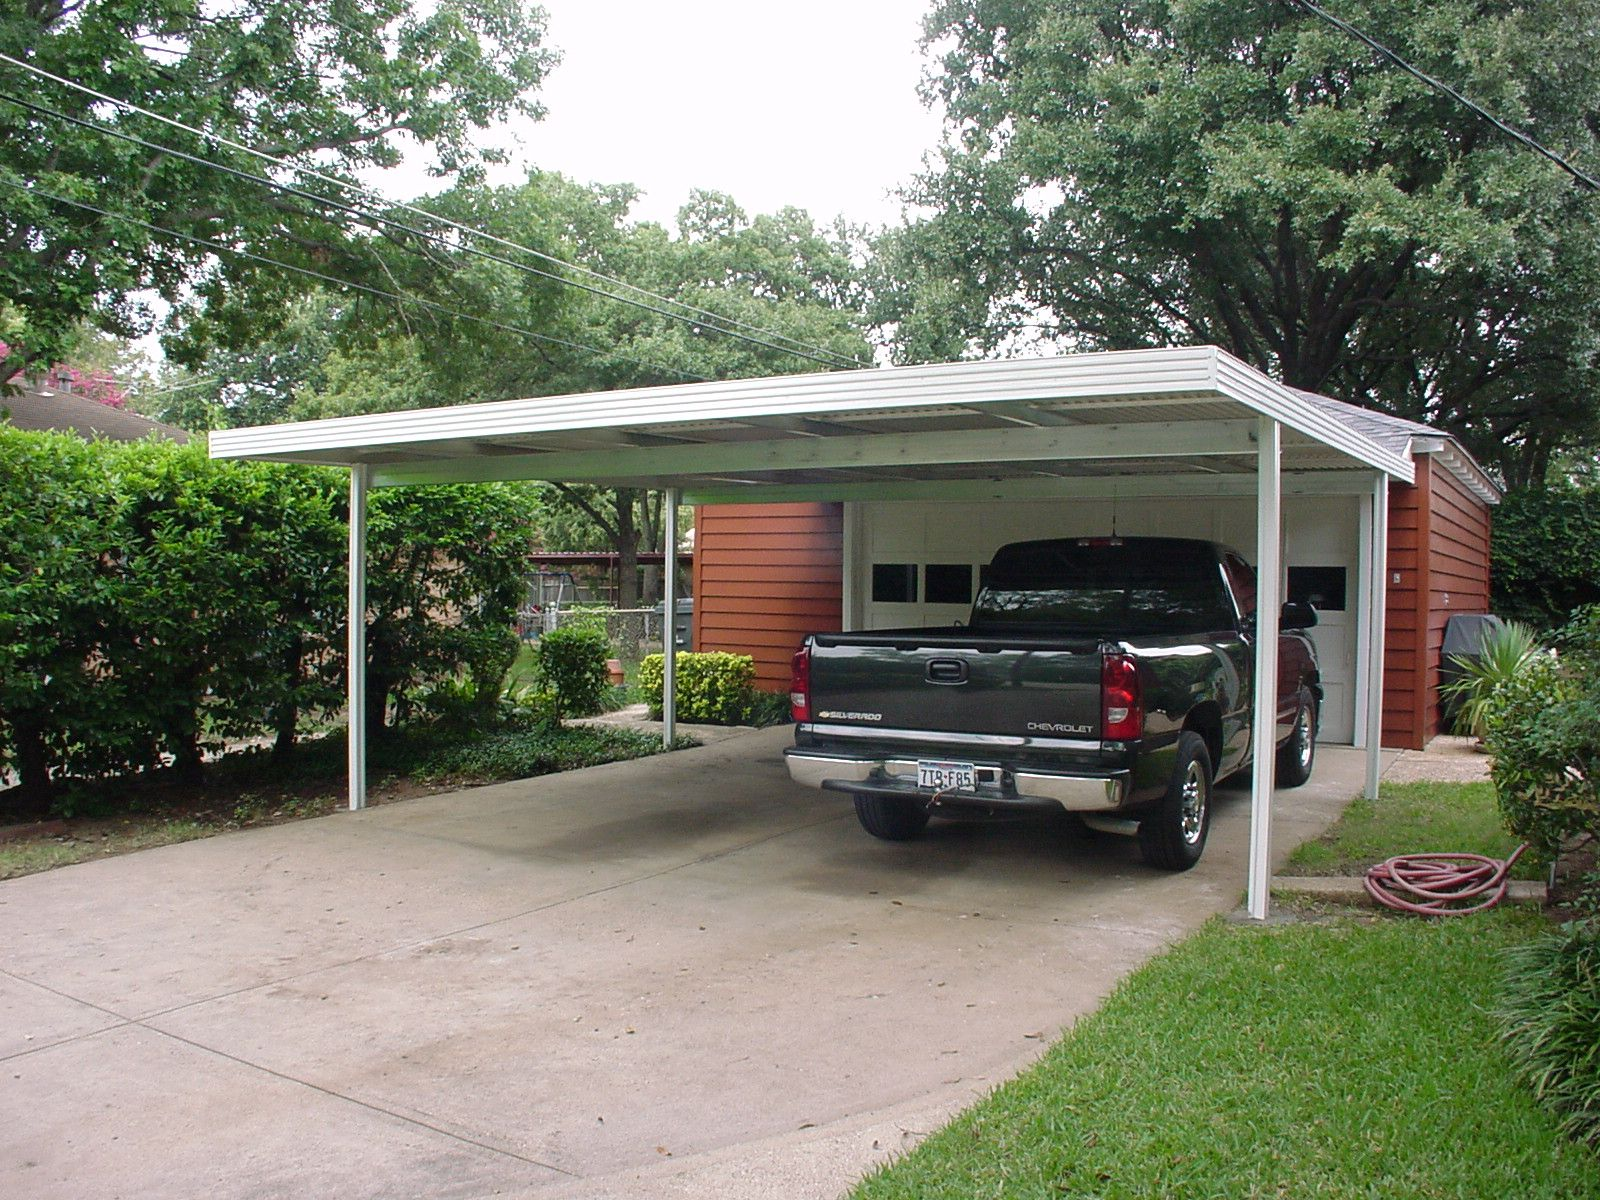 20x20 carport attached to home